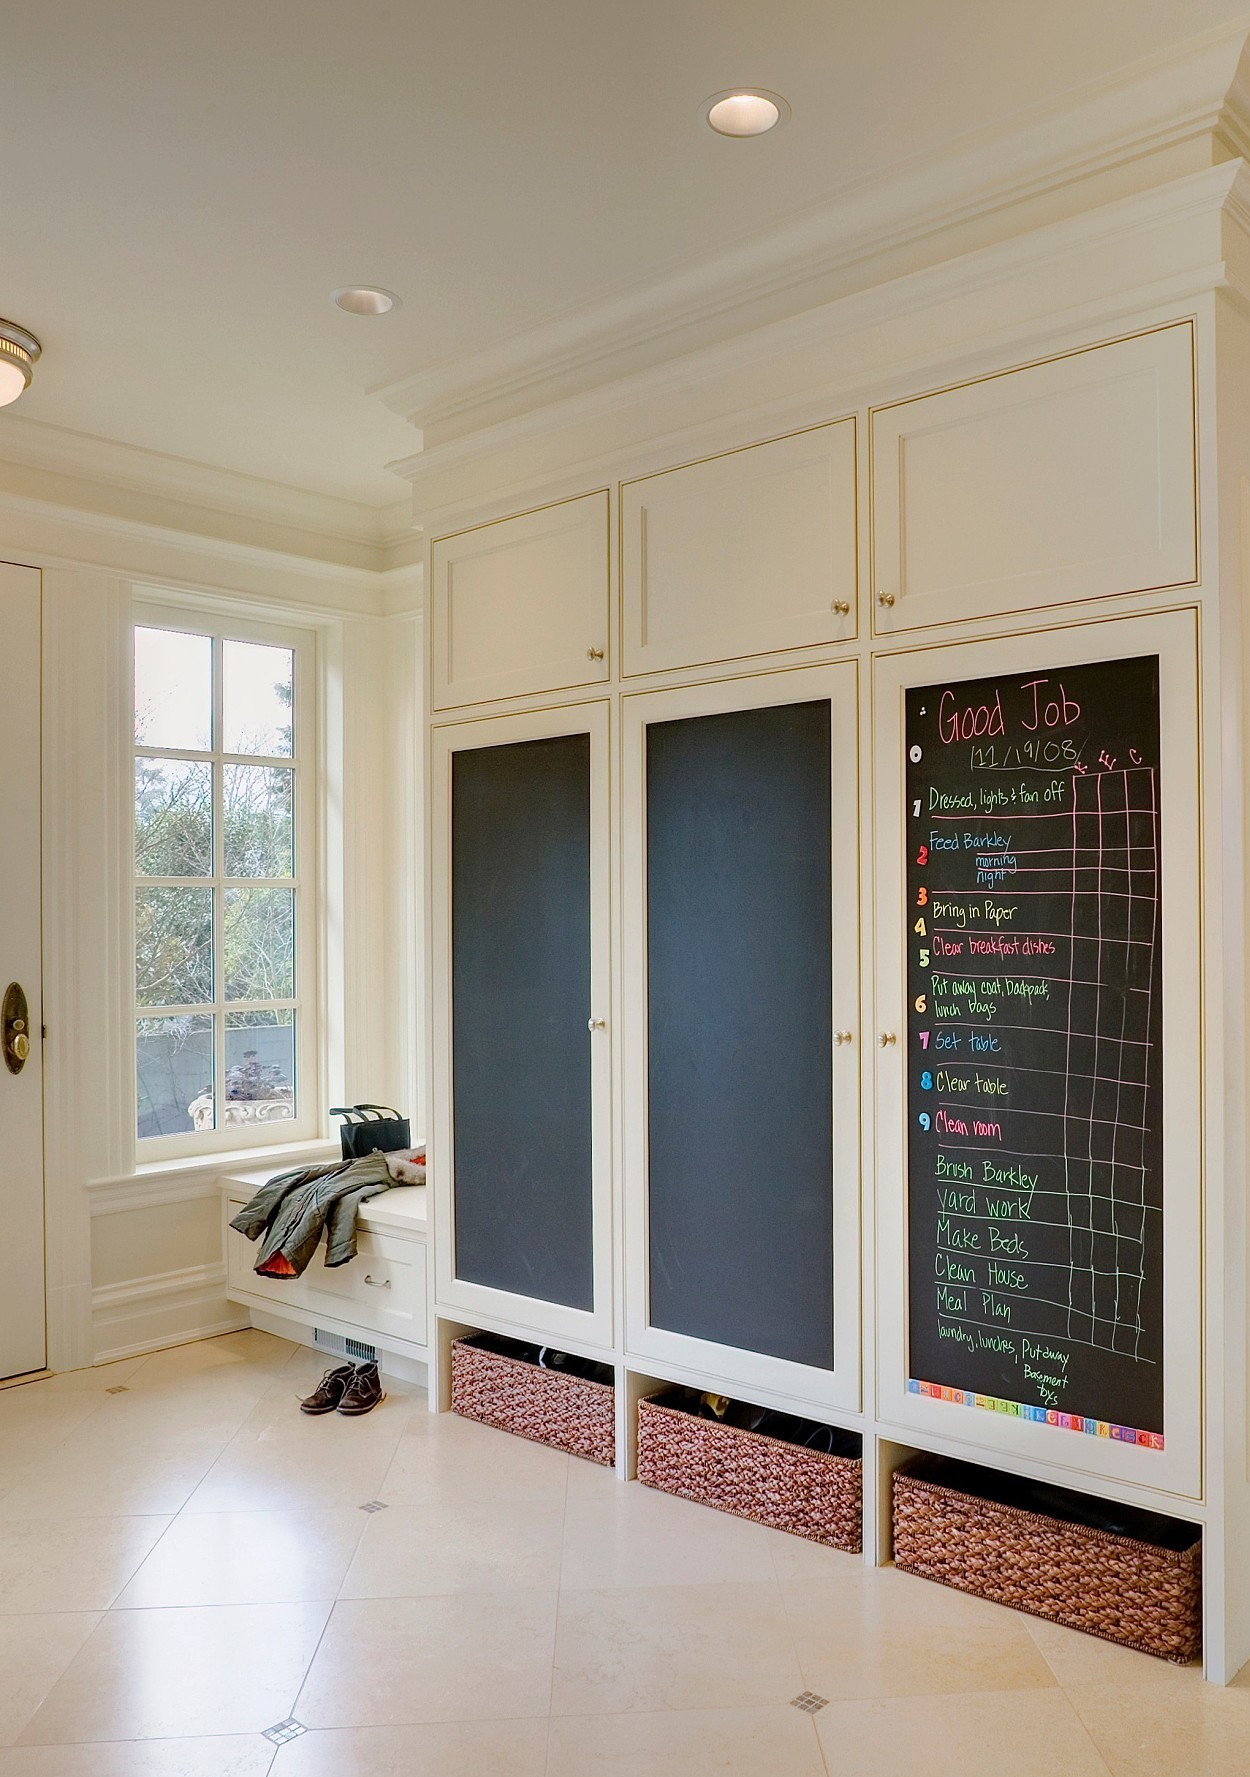 Eingangsbereich Innen Gestalten 8 Fun And Functional Mudroom Ideas For A Super-organized